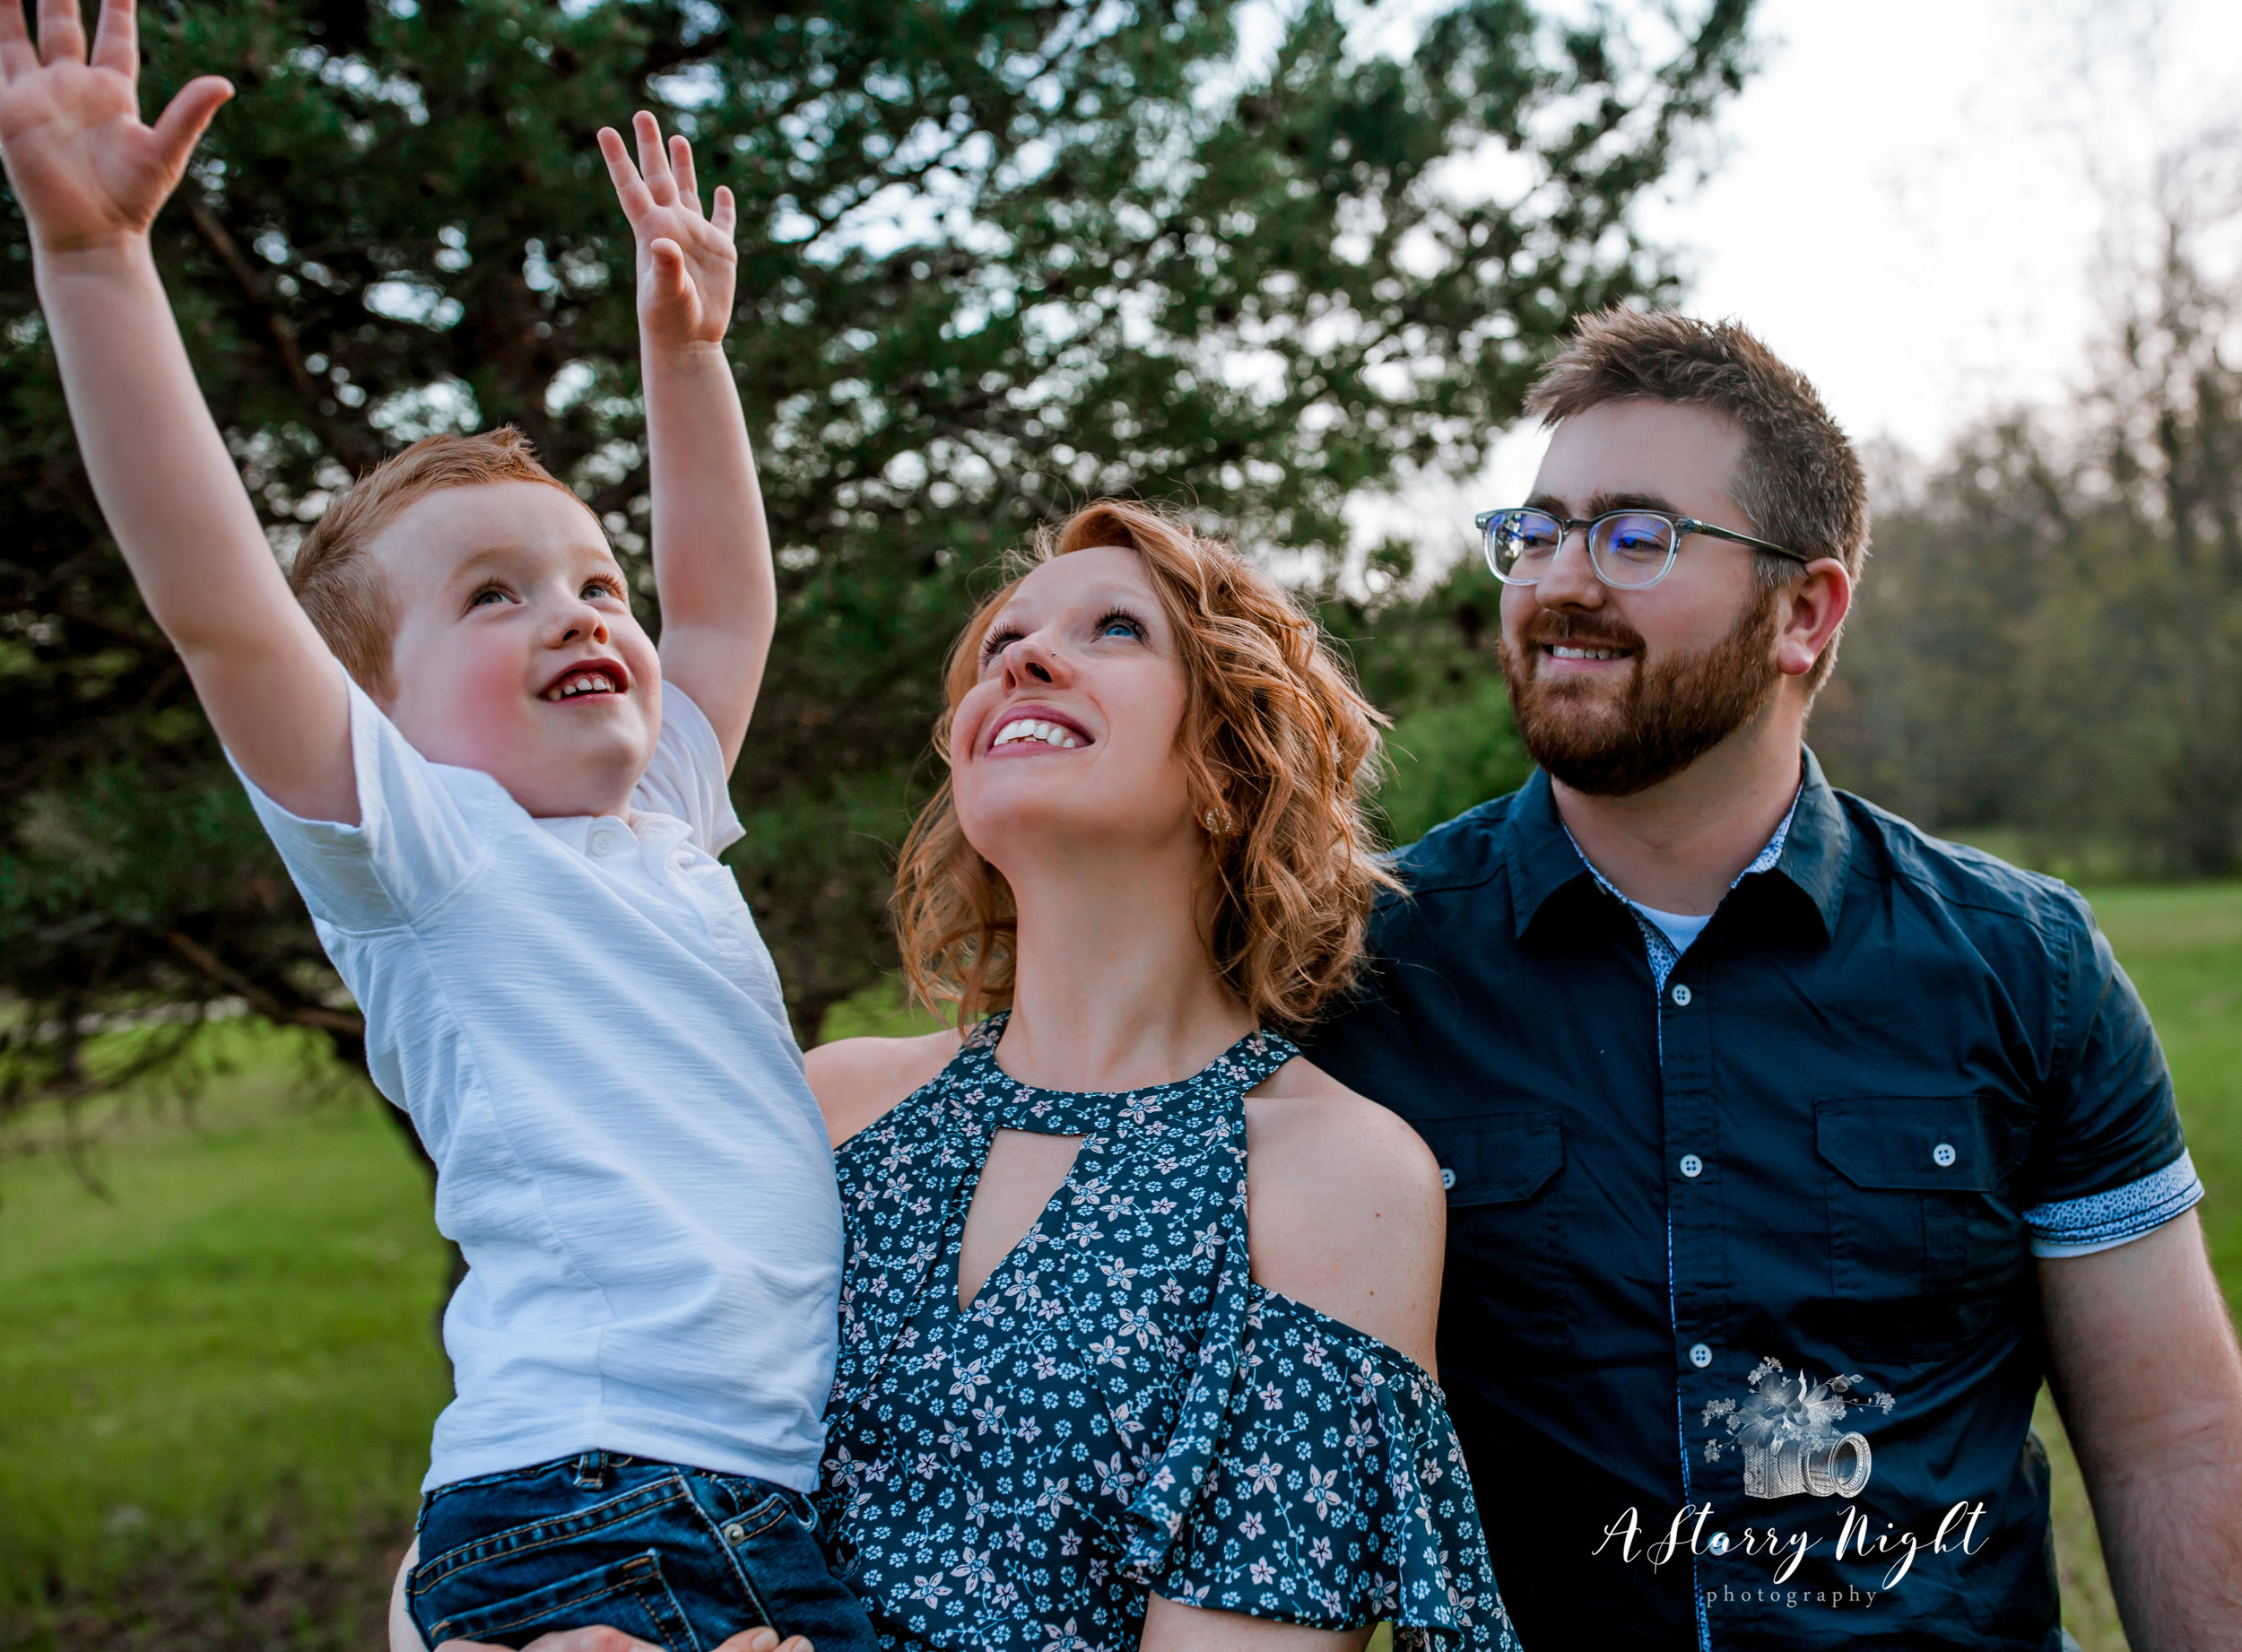 Clare-Midland-Michigan-Family-Photography-images.jpg